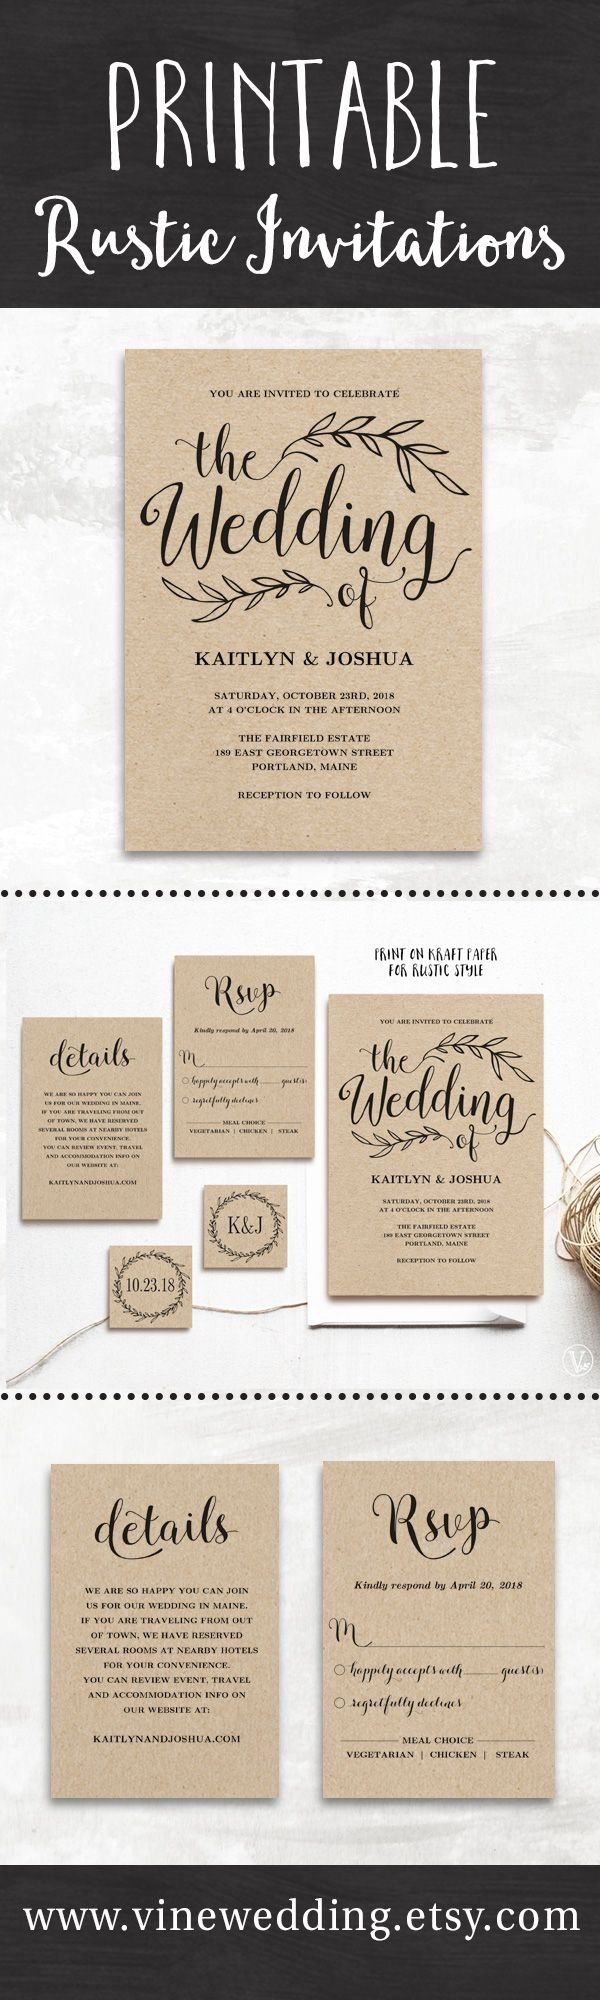 Beautiful rustic wedding invitations Editable instant templates you can print as many as you